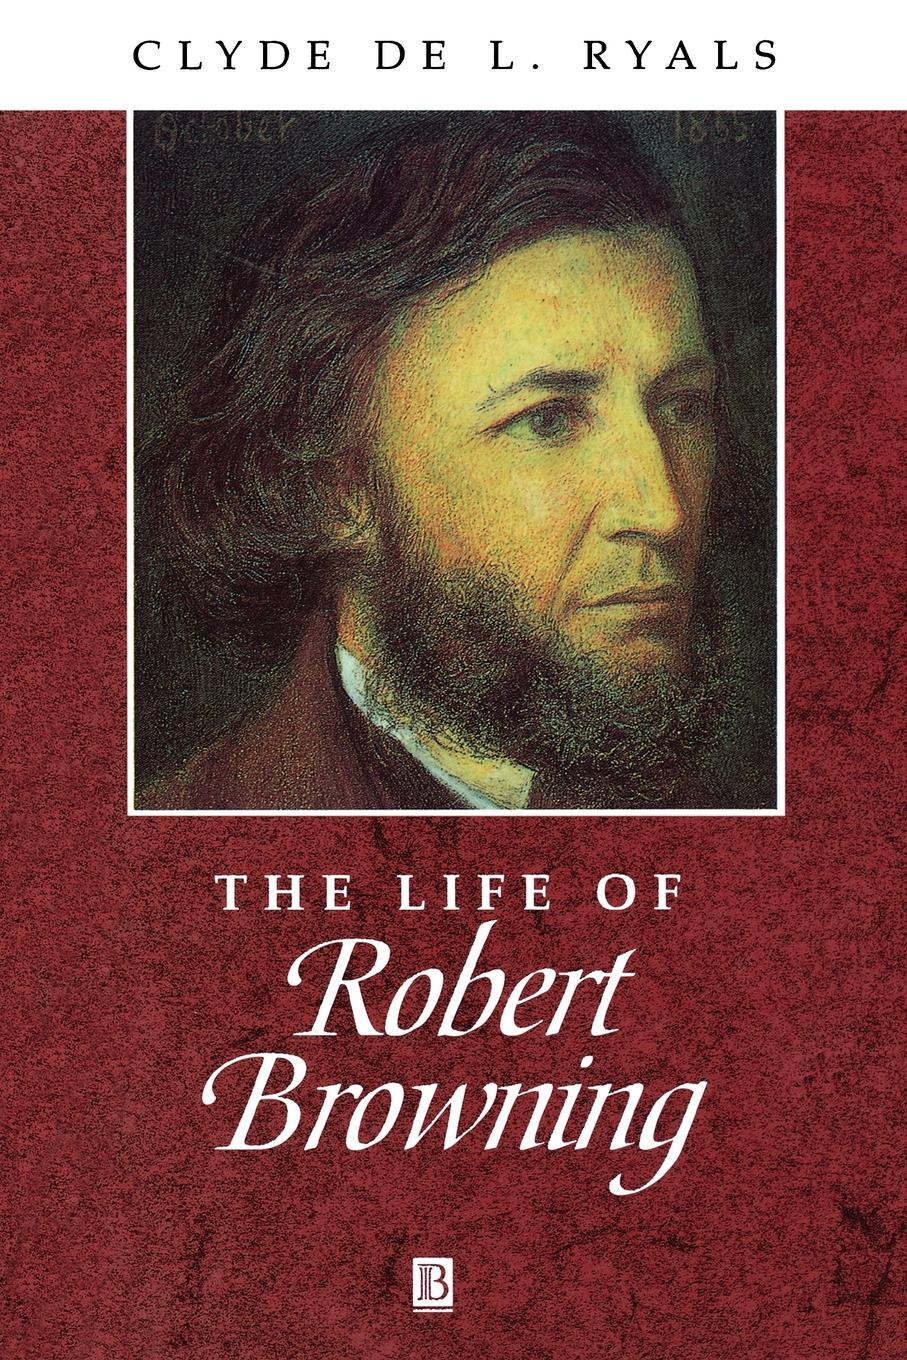 RYALS The Life of Robert Browning